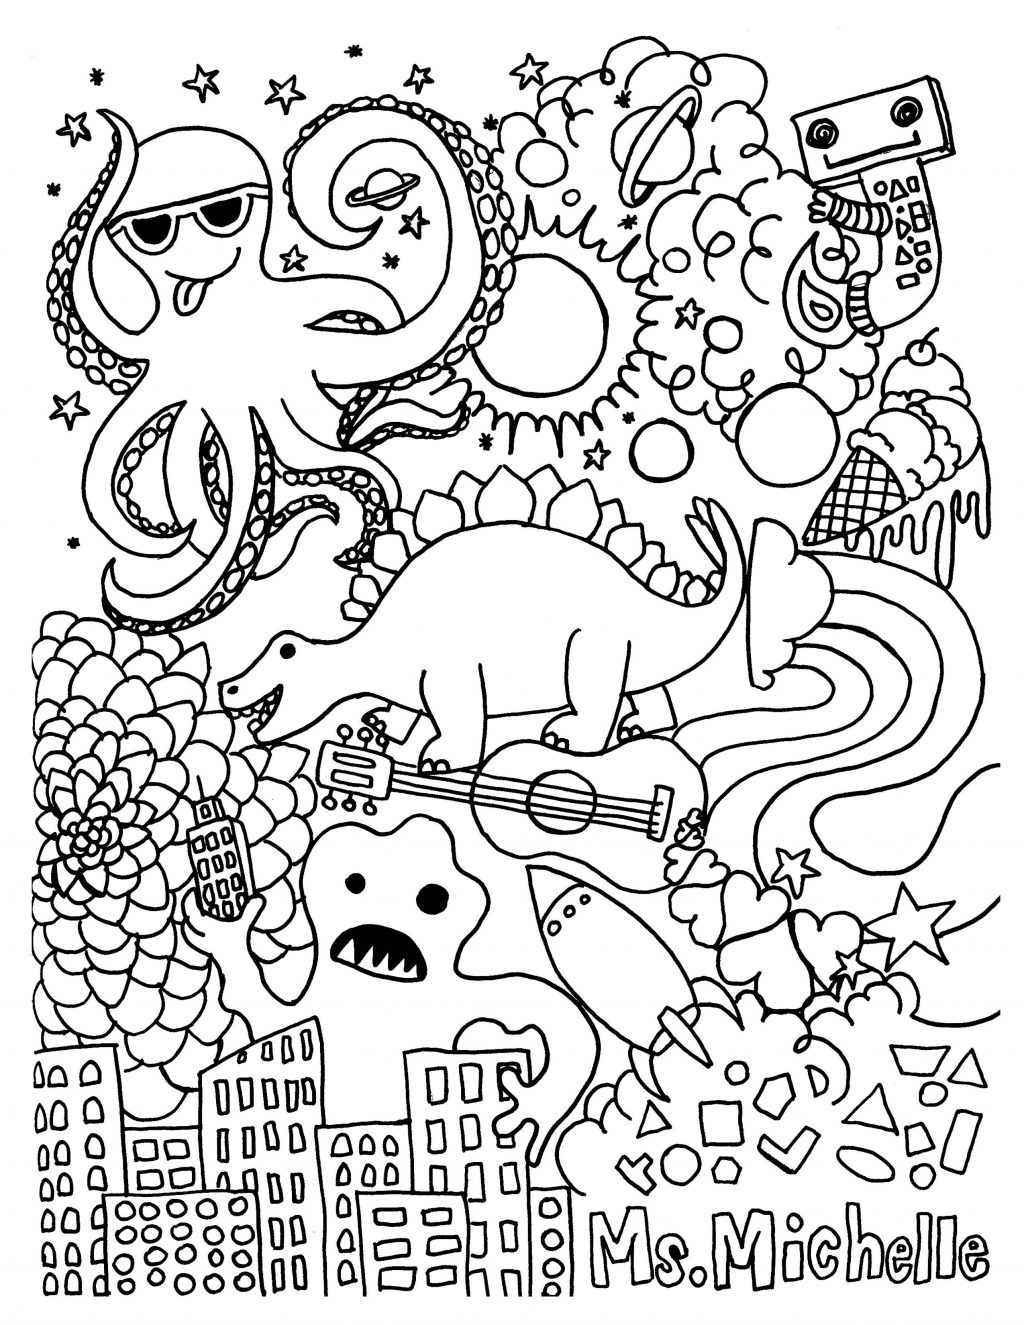 Coloring Page ~ Inspirational Free Printable Coloring Pages For Year - Free Printable Coloring Pages For 2 Year Olds